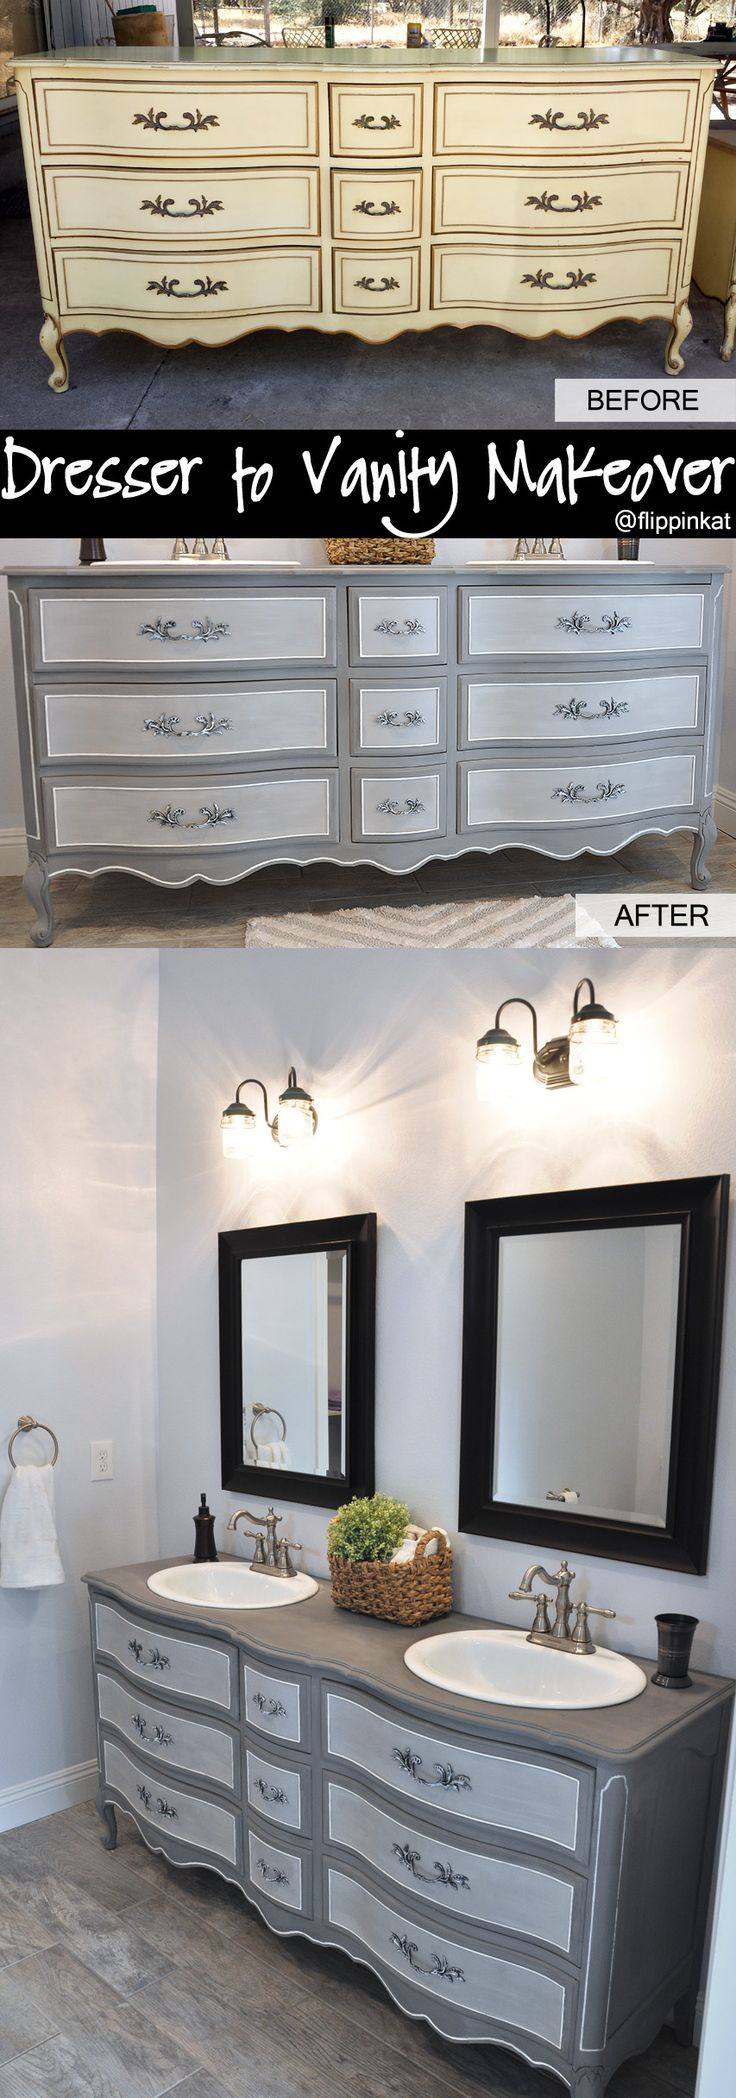 Dresser to vanity and bathroom renovation. Got an old French Provincial style dresser off Craigslist and gave it a makeover! I love the before and after.